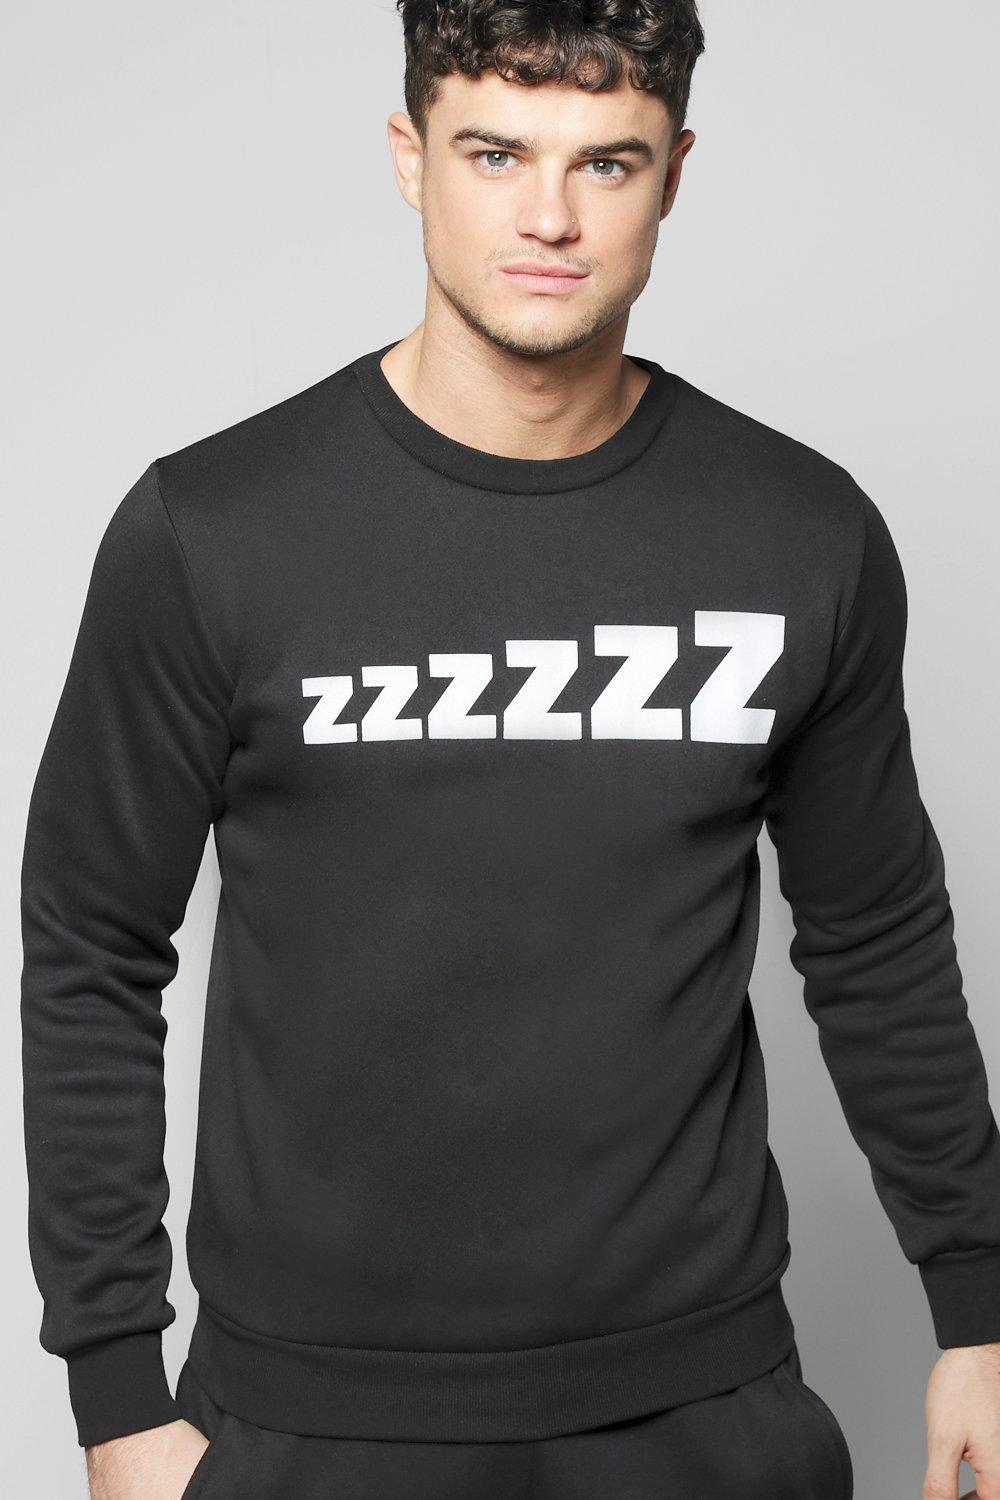 Zzz Print Crew Neck Sweater